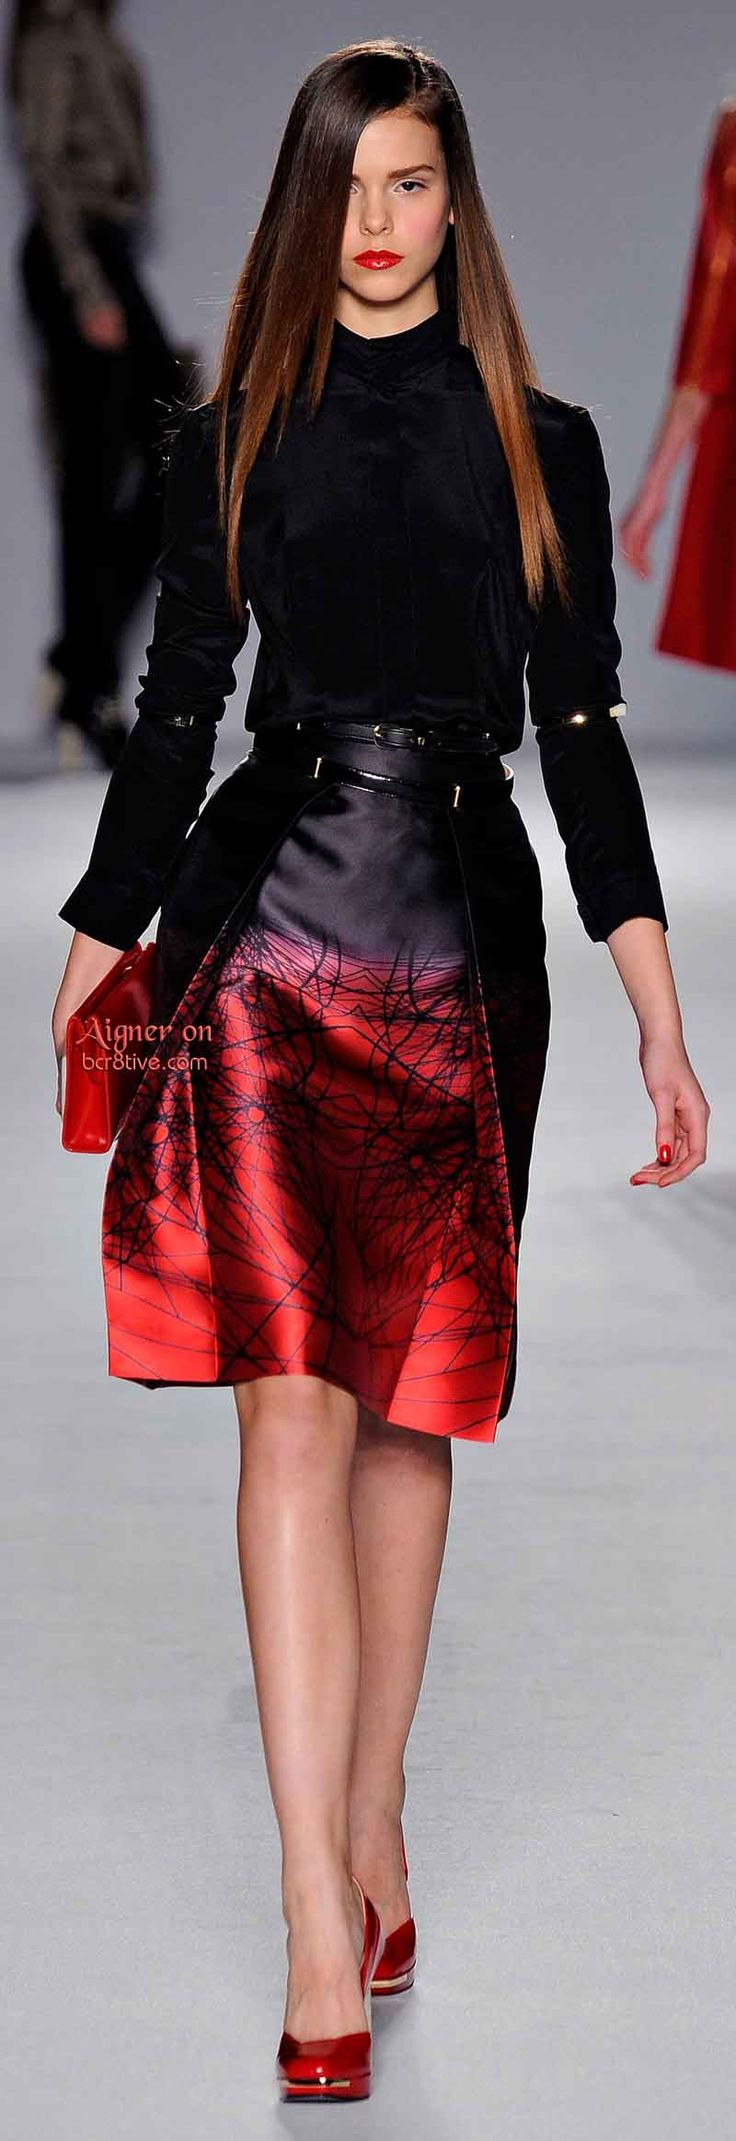 Aigner Fall Winter 2014-15 RTW Two of my favorite colors and it's fresh and fierce.